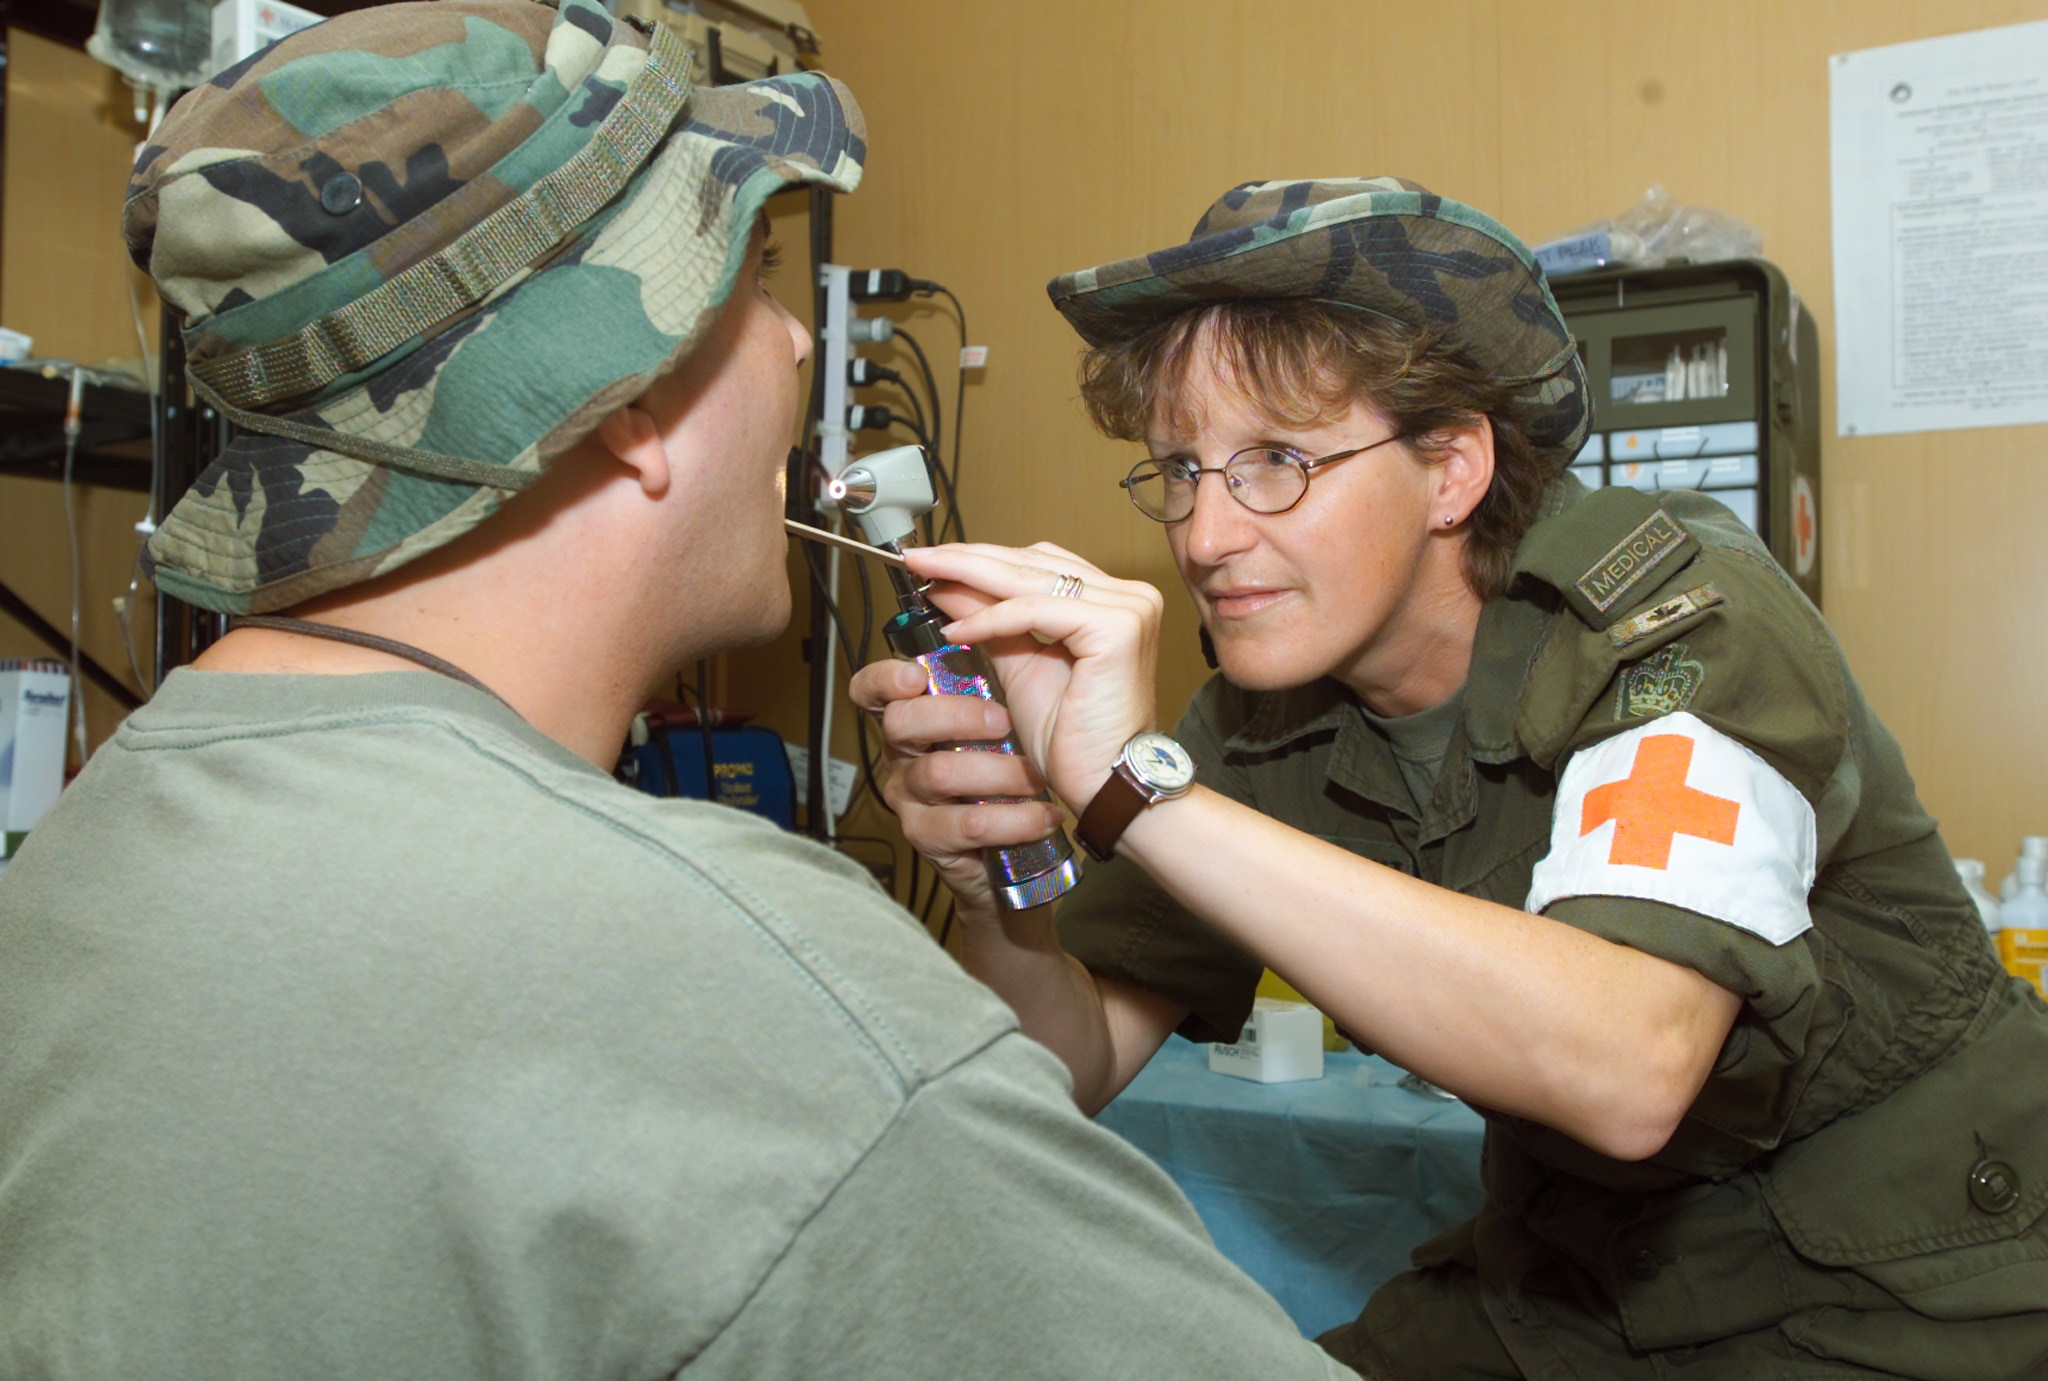 On February 12, 2002, Warrant Officer Dianne Maidment, a physician's assistant from 14 Wing Greenwood, Nova Scotia, Canada, checks a patient's throat in a medical clinic during Operation Apollo in the Arabian Gulf region. PHOTO: Master Corporal Jeff D. de Molitor, APD02-0009a-01